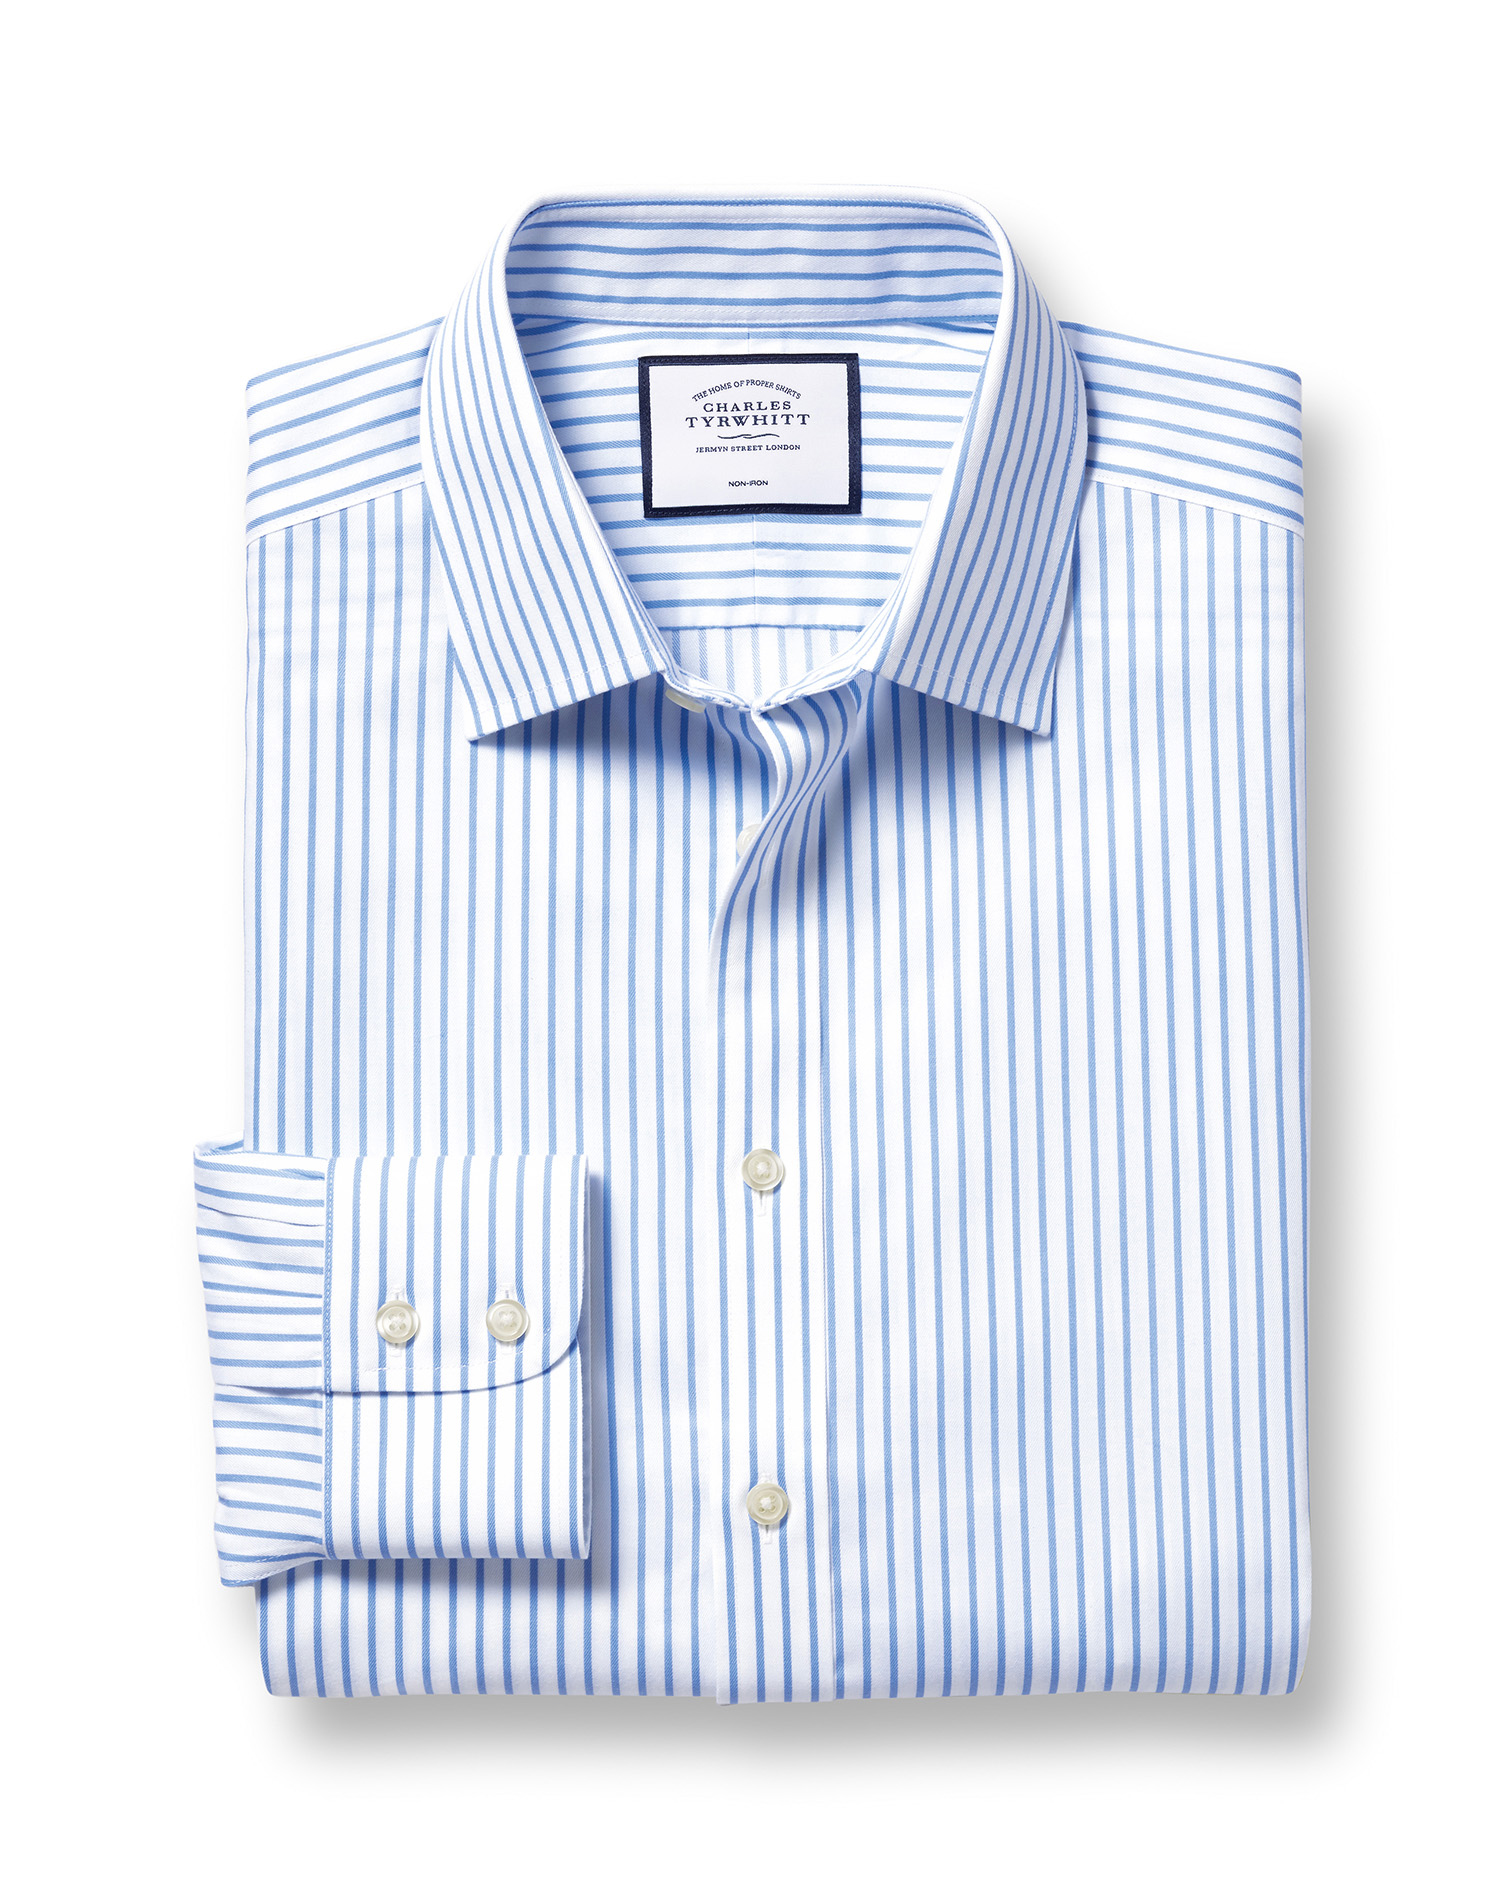 Classic Fit Non-Iron Twill White and Sky Blue Stripe Cotton Formal Shirt Single Cuff Size 16/35 by C